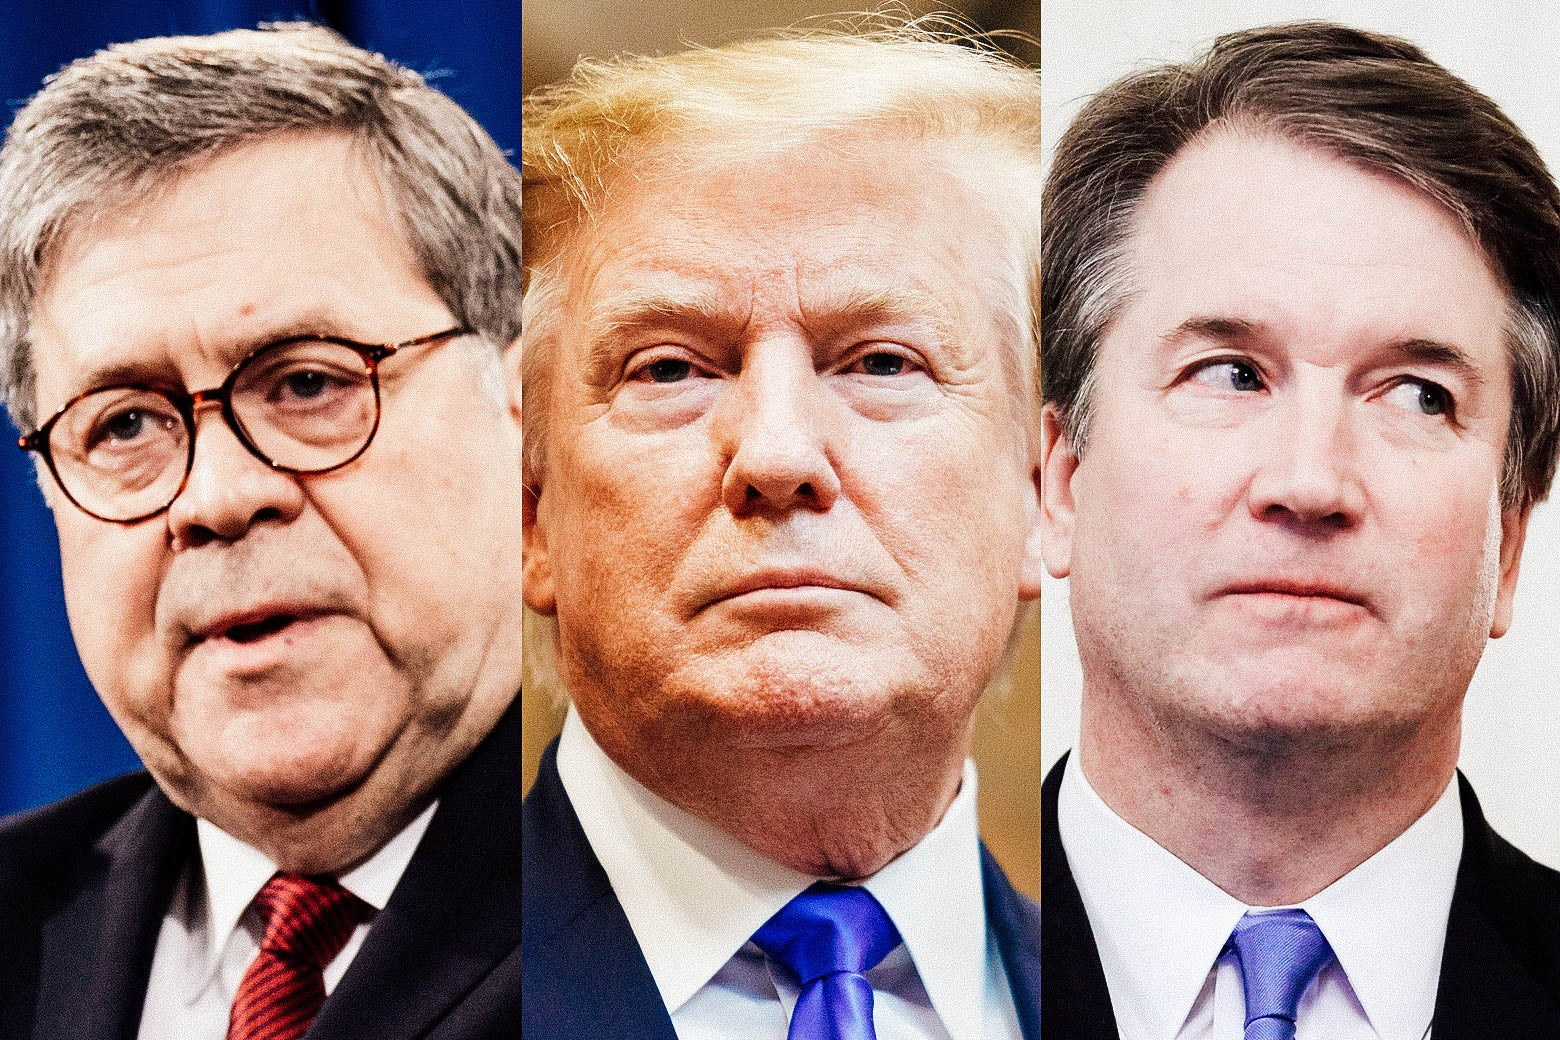 William Barr, Donald Trump, and Brett Kavanaugh.